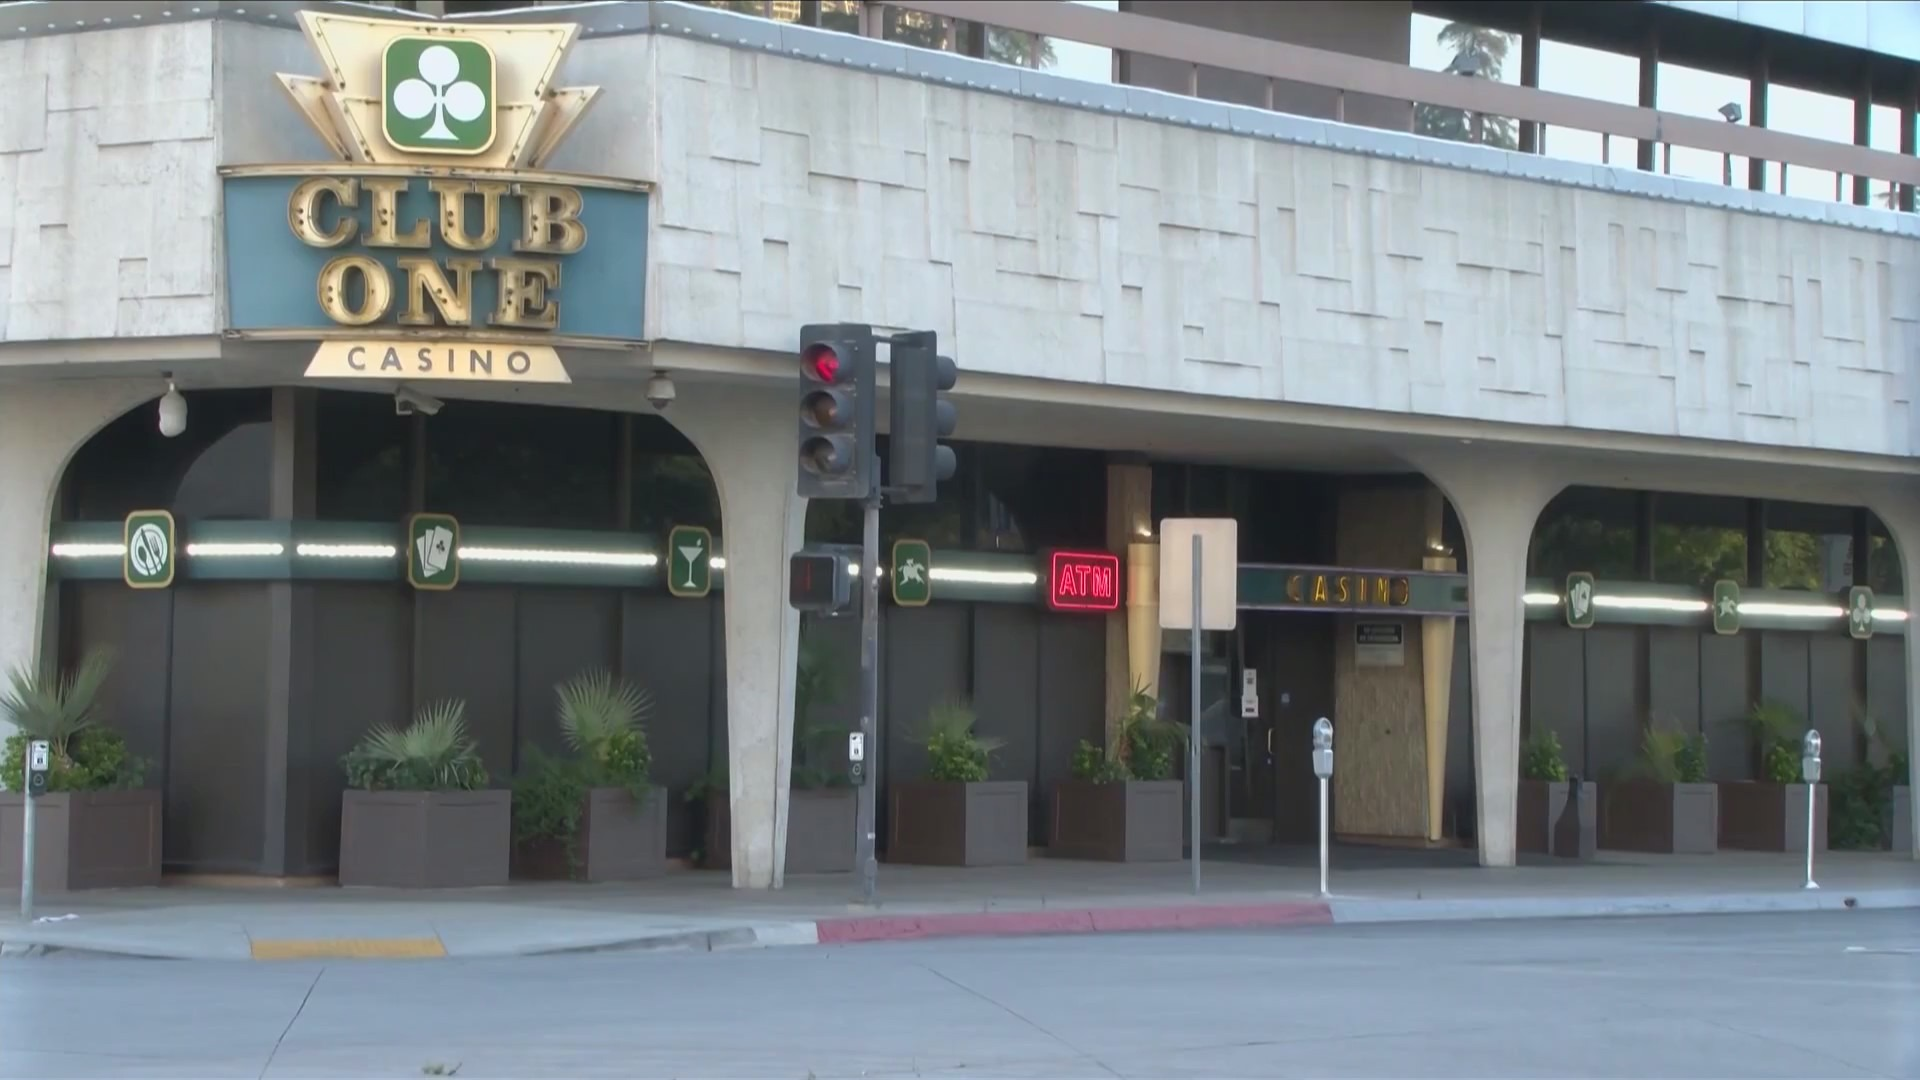 Club One Casino relocation decision delayed by Fresno City Council